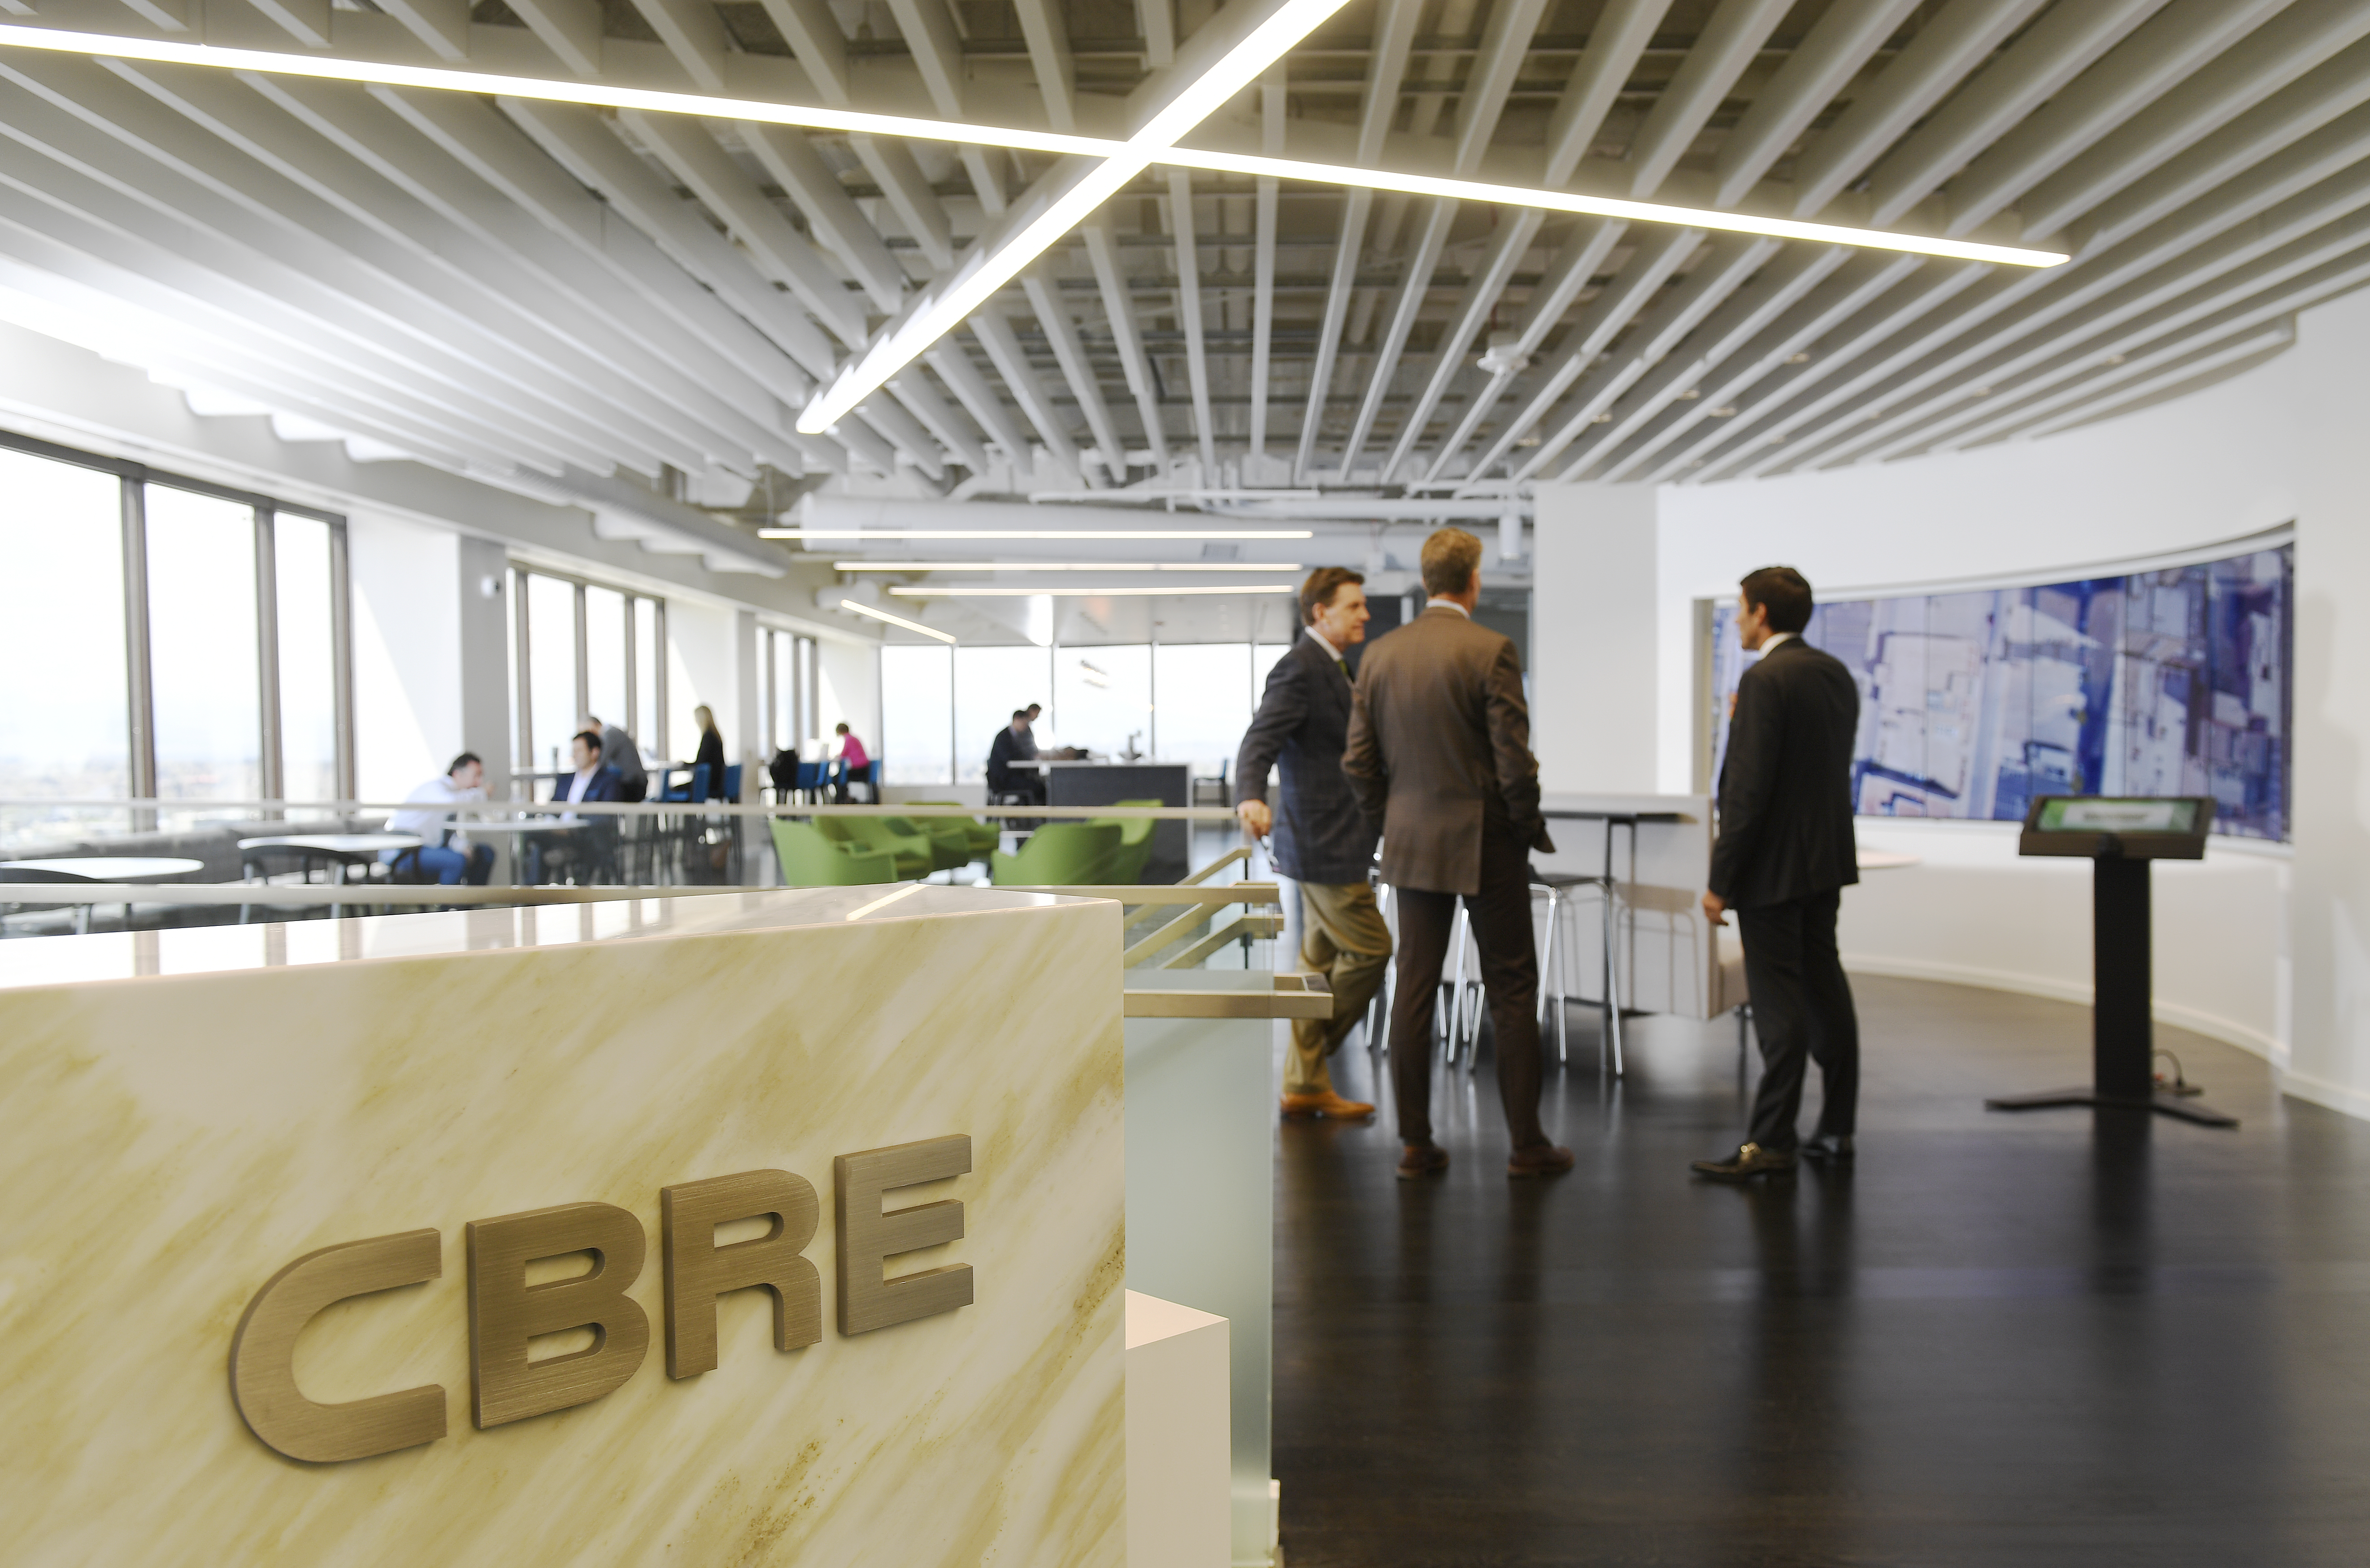 The commercial real estate firm CBRE just opened it's new Workplace360 office for it's downtown Denver office.